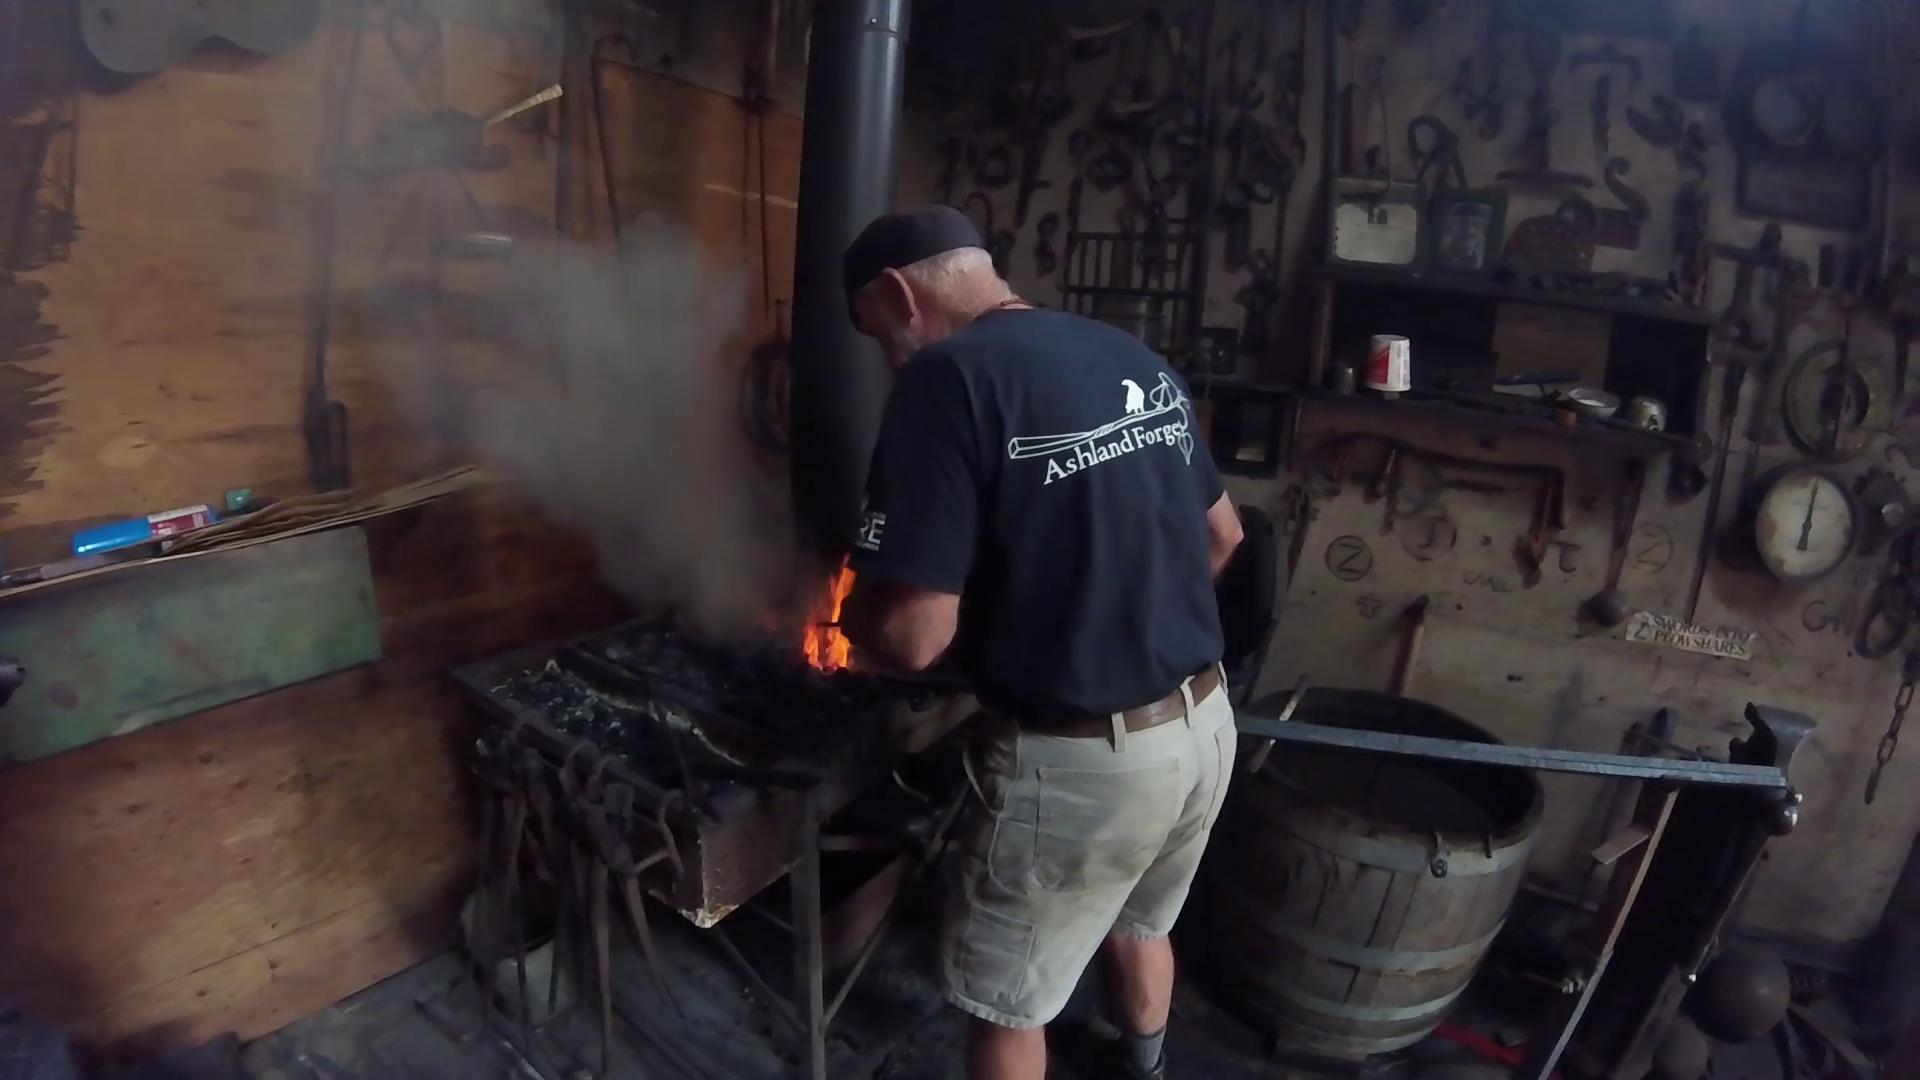 Ashland Forge video by Andy AtkinsonThumbnail